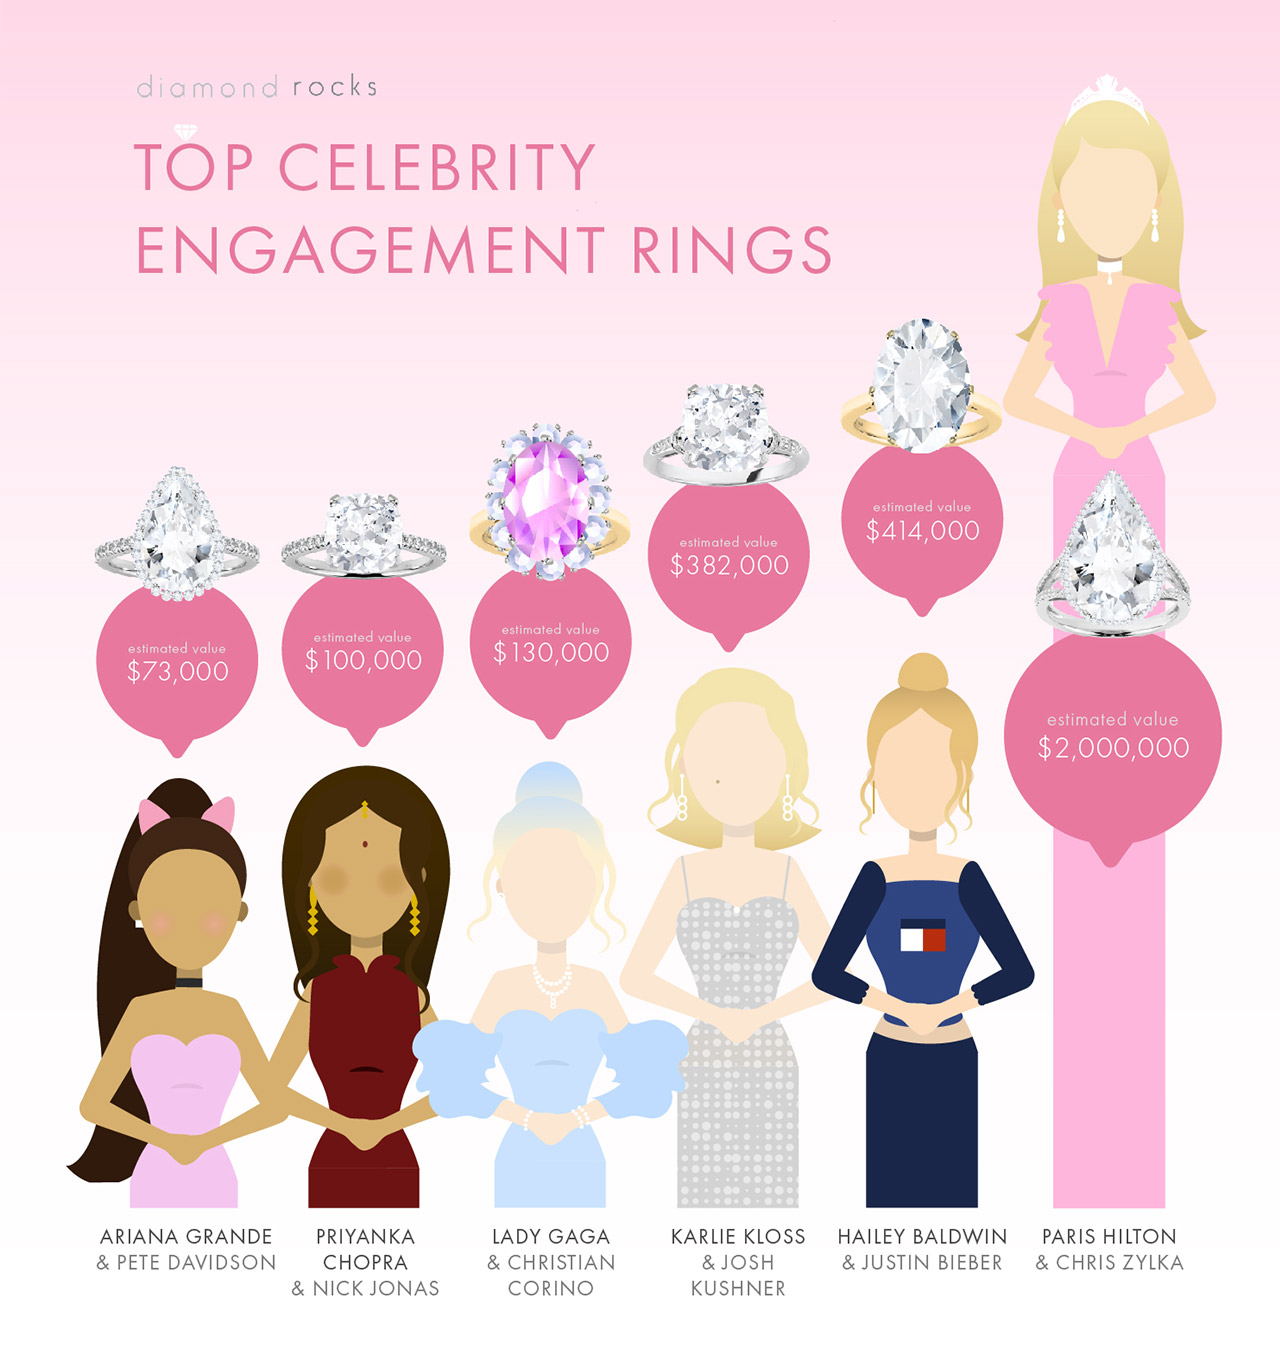 Best celebrity engagement rings from Hailey Baldwin Lady Gaga Priyanka Chopra Ariana Grande and Paris Hilton